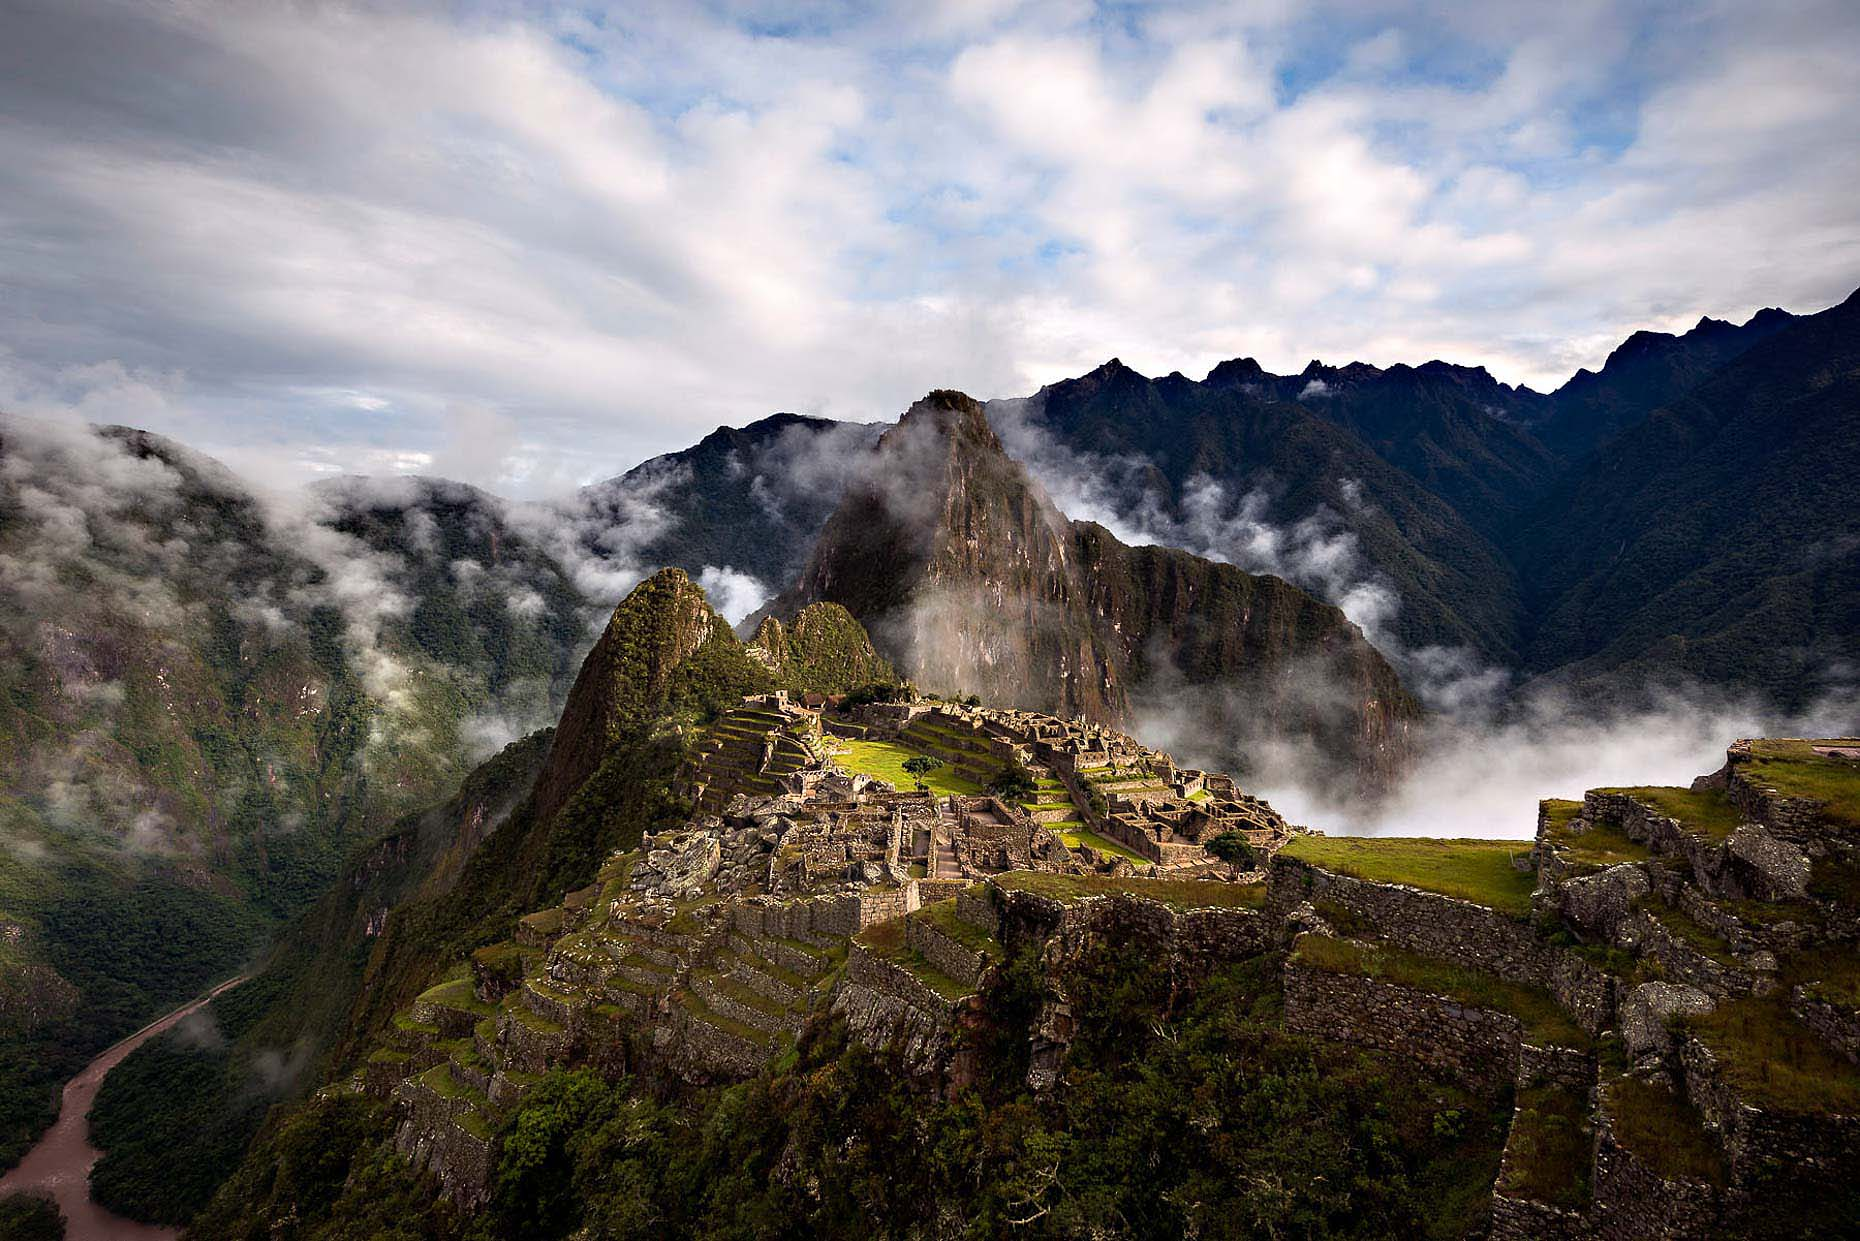 machu-picchu-unesco-site-sacred-valley-peru-landscape-photography-dawn-17